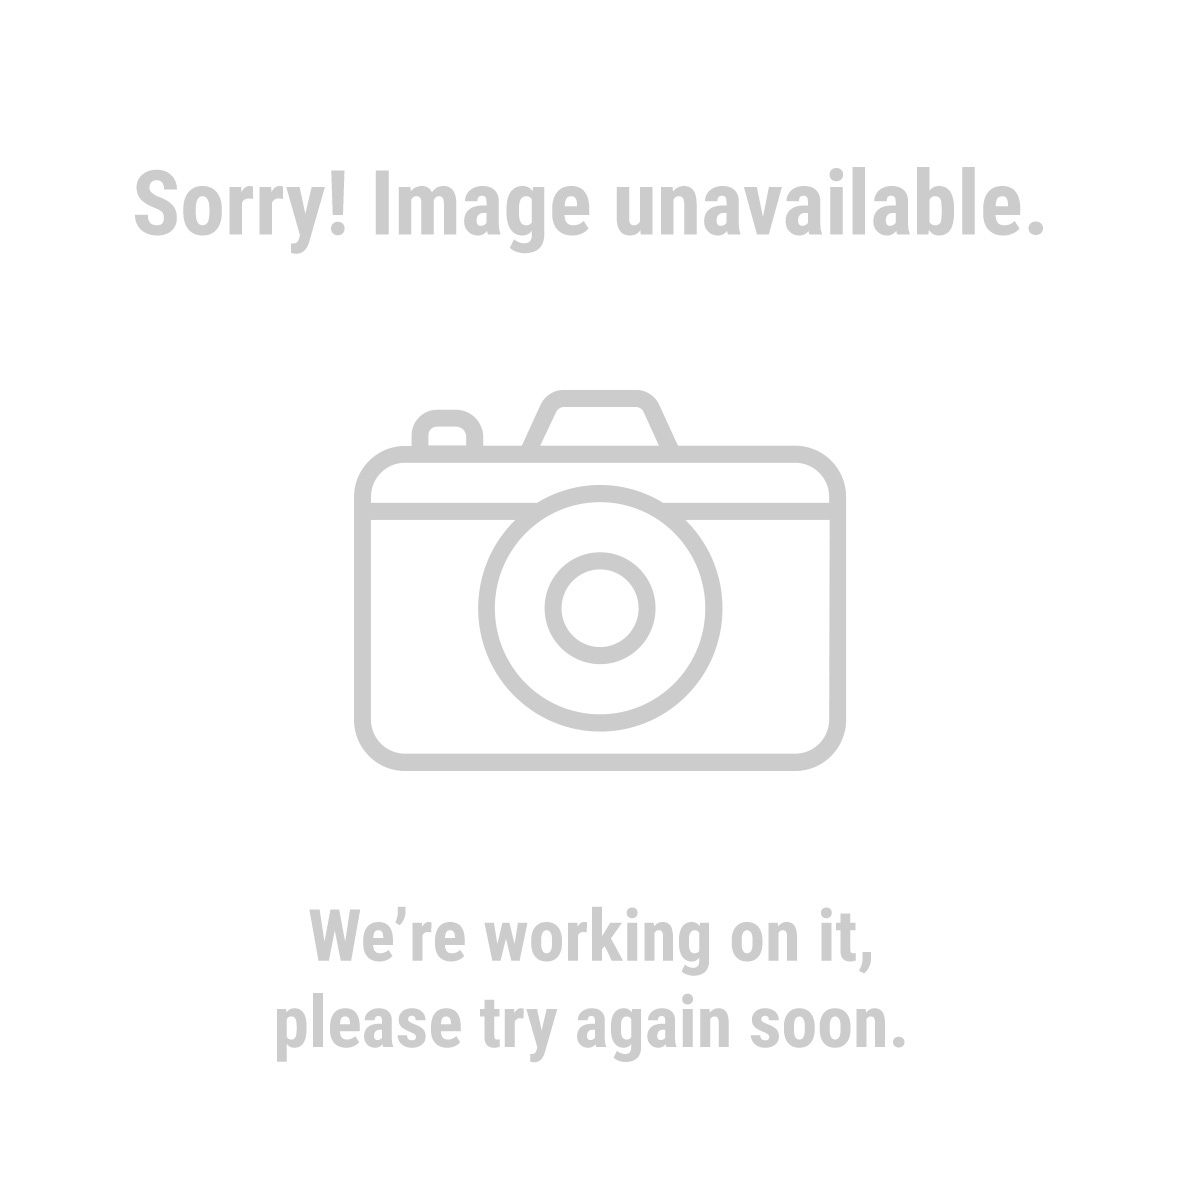 Central Pneumatic® 93274 5 Horsepower, 60 Gallon, 165 PSI Two Stage Air Compressor